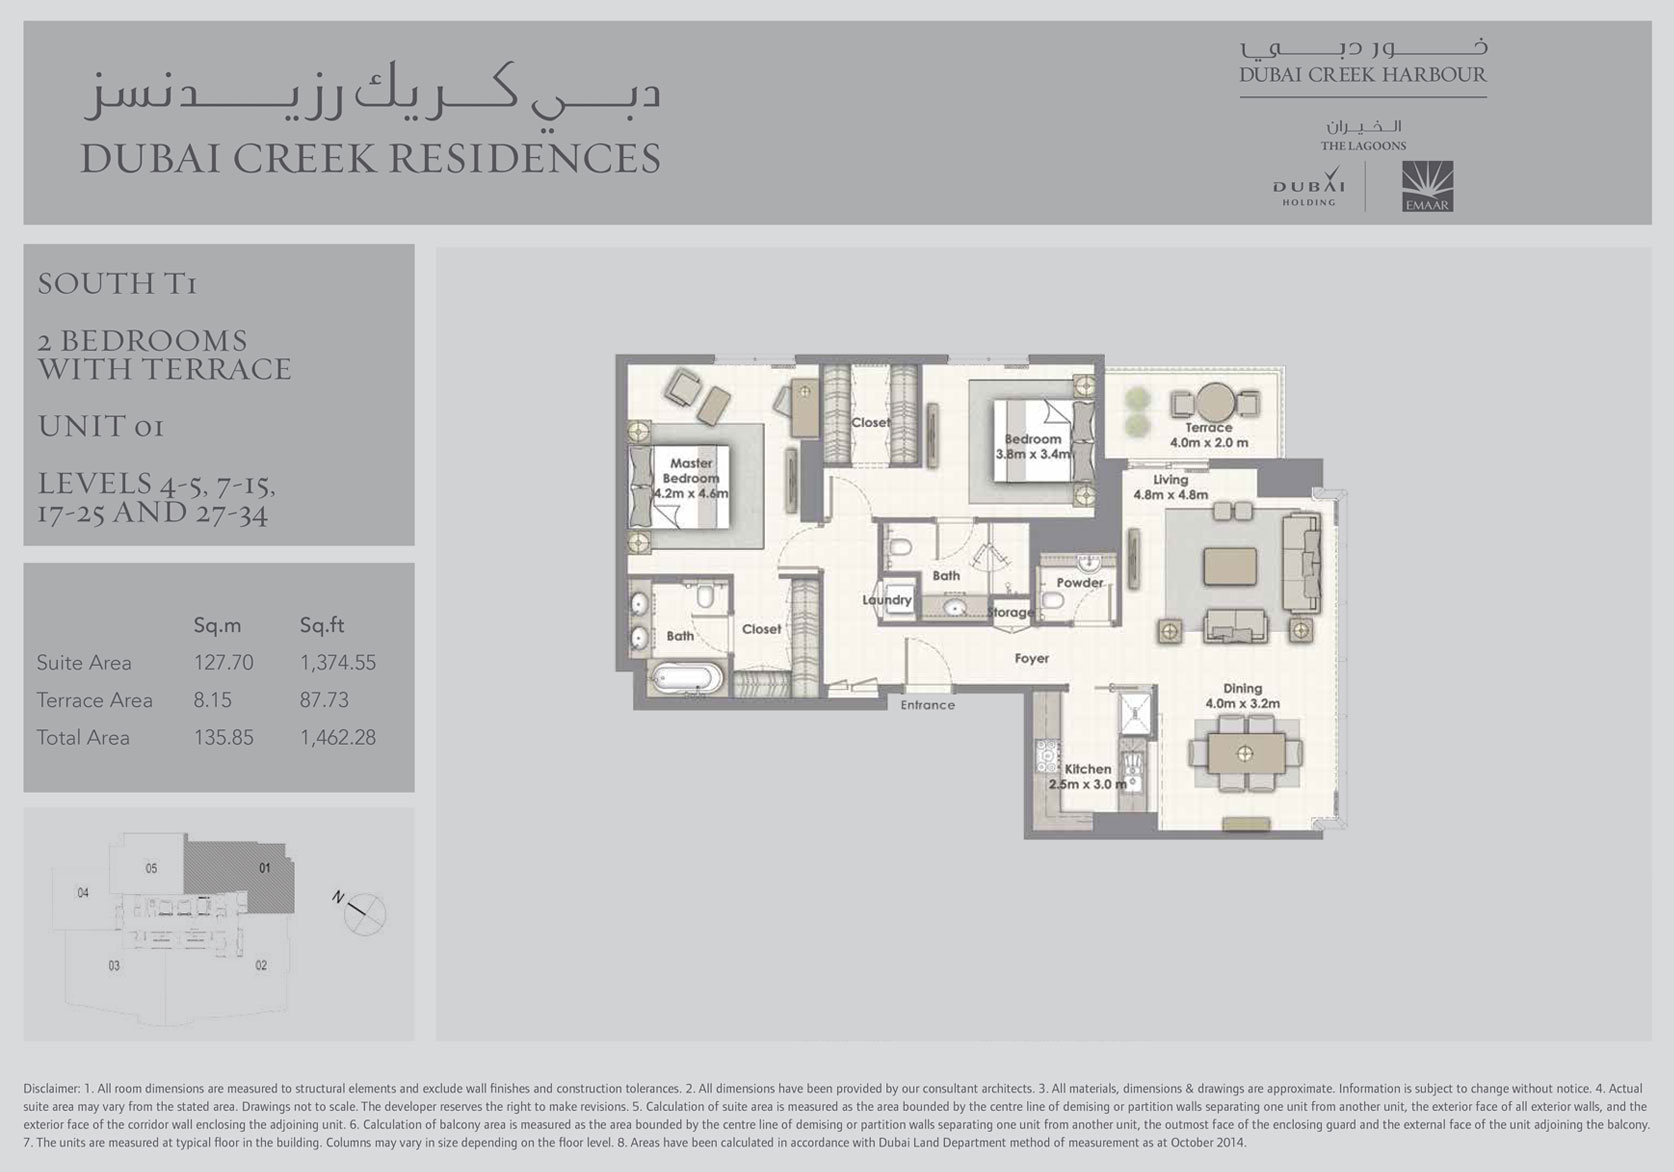 2 Bedrooms With Rerrace